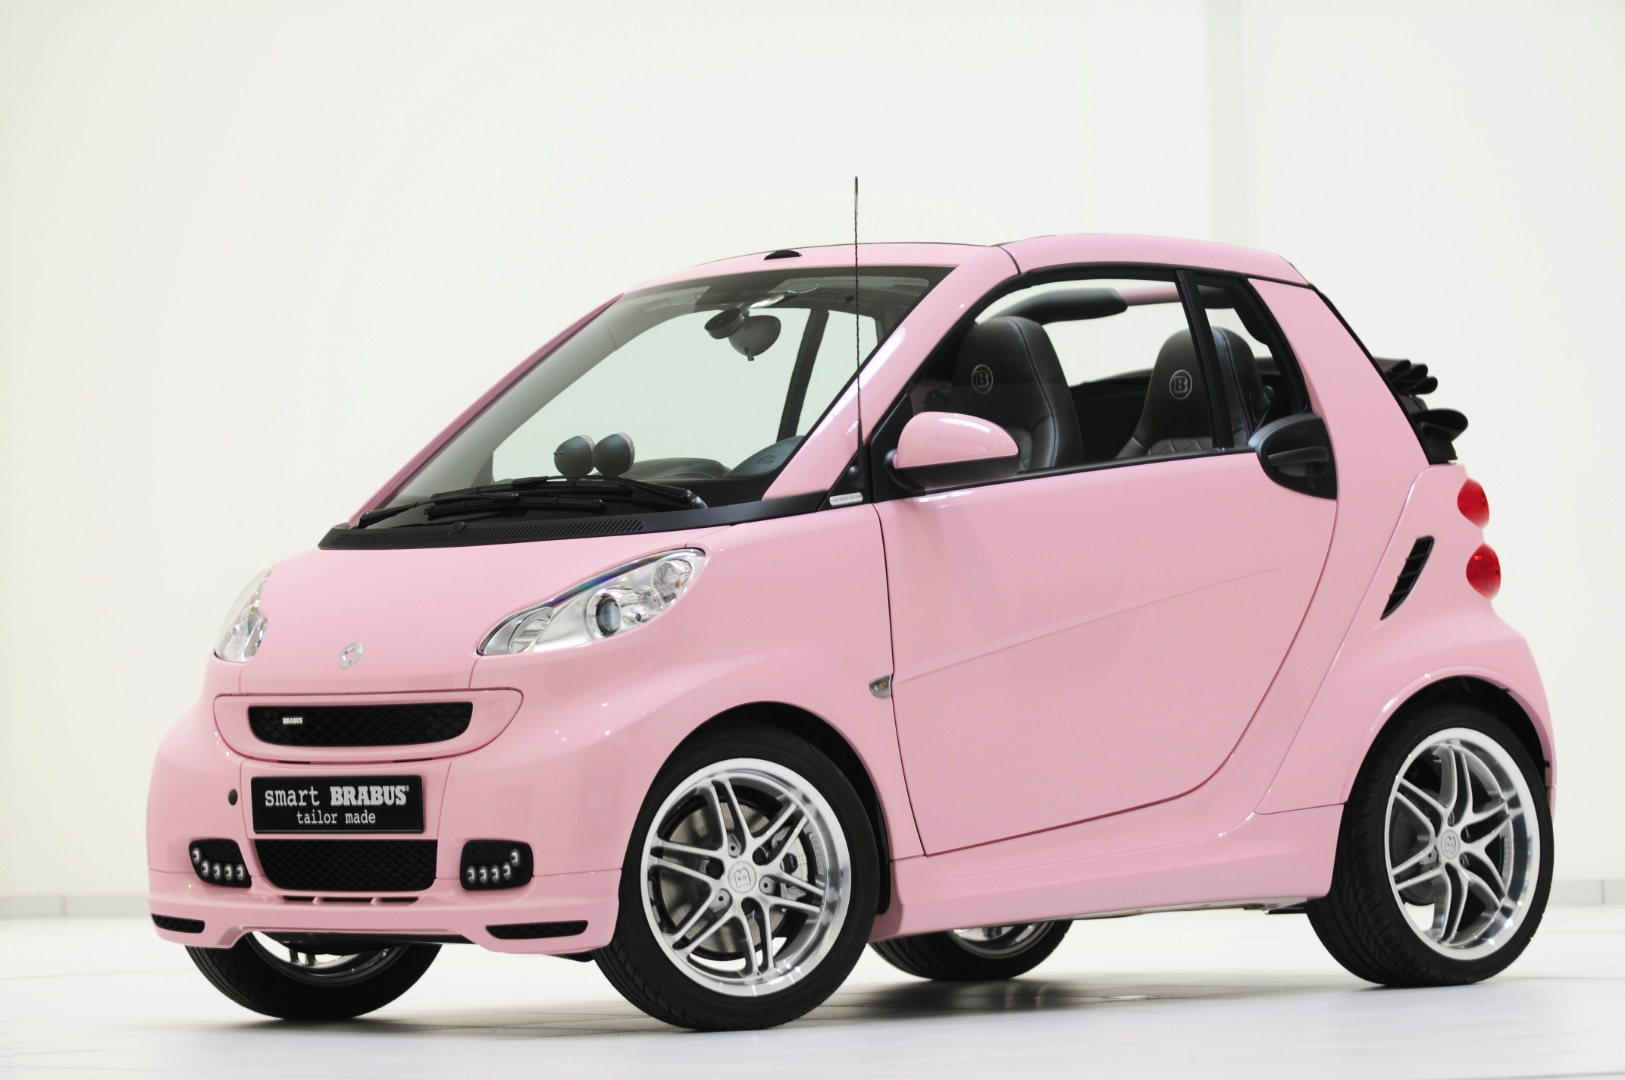 Smart Fortwo Wins Most Embarrassing Car Award